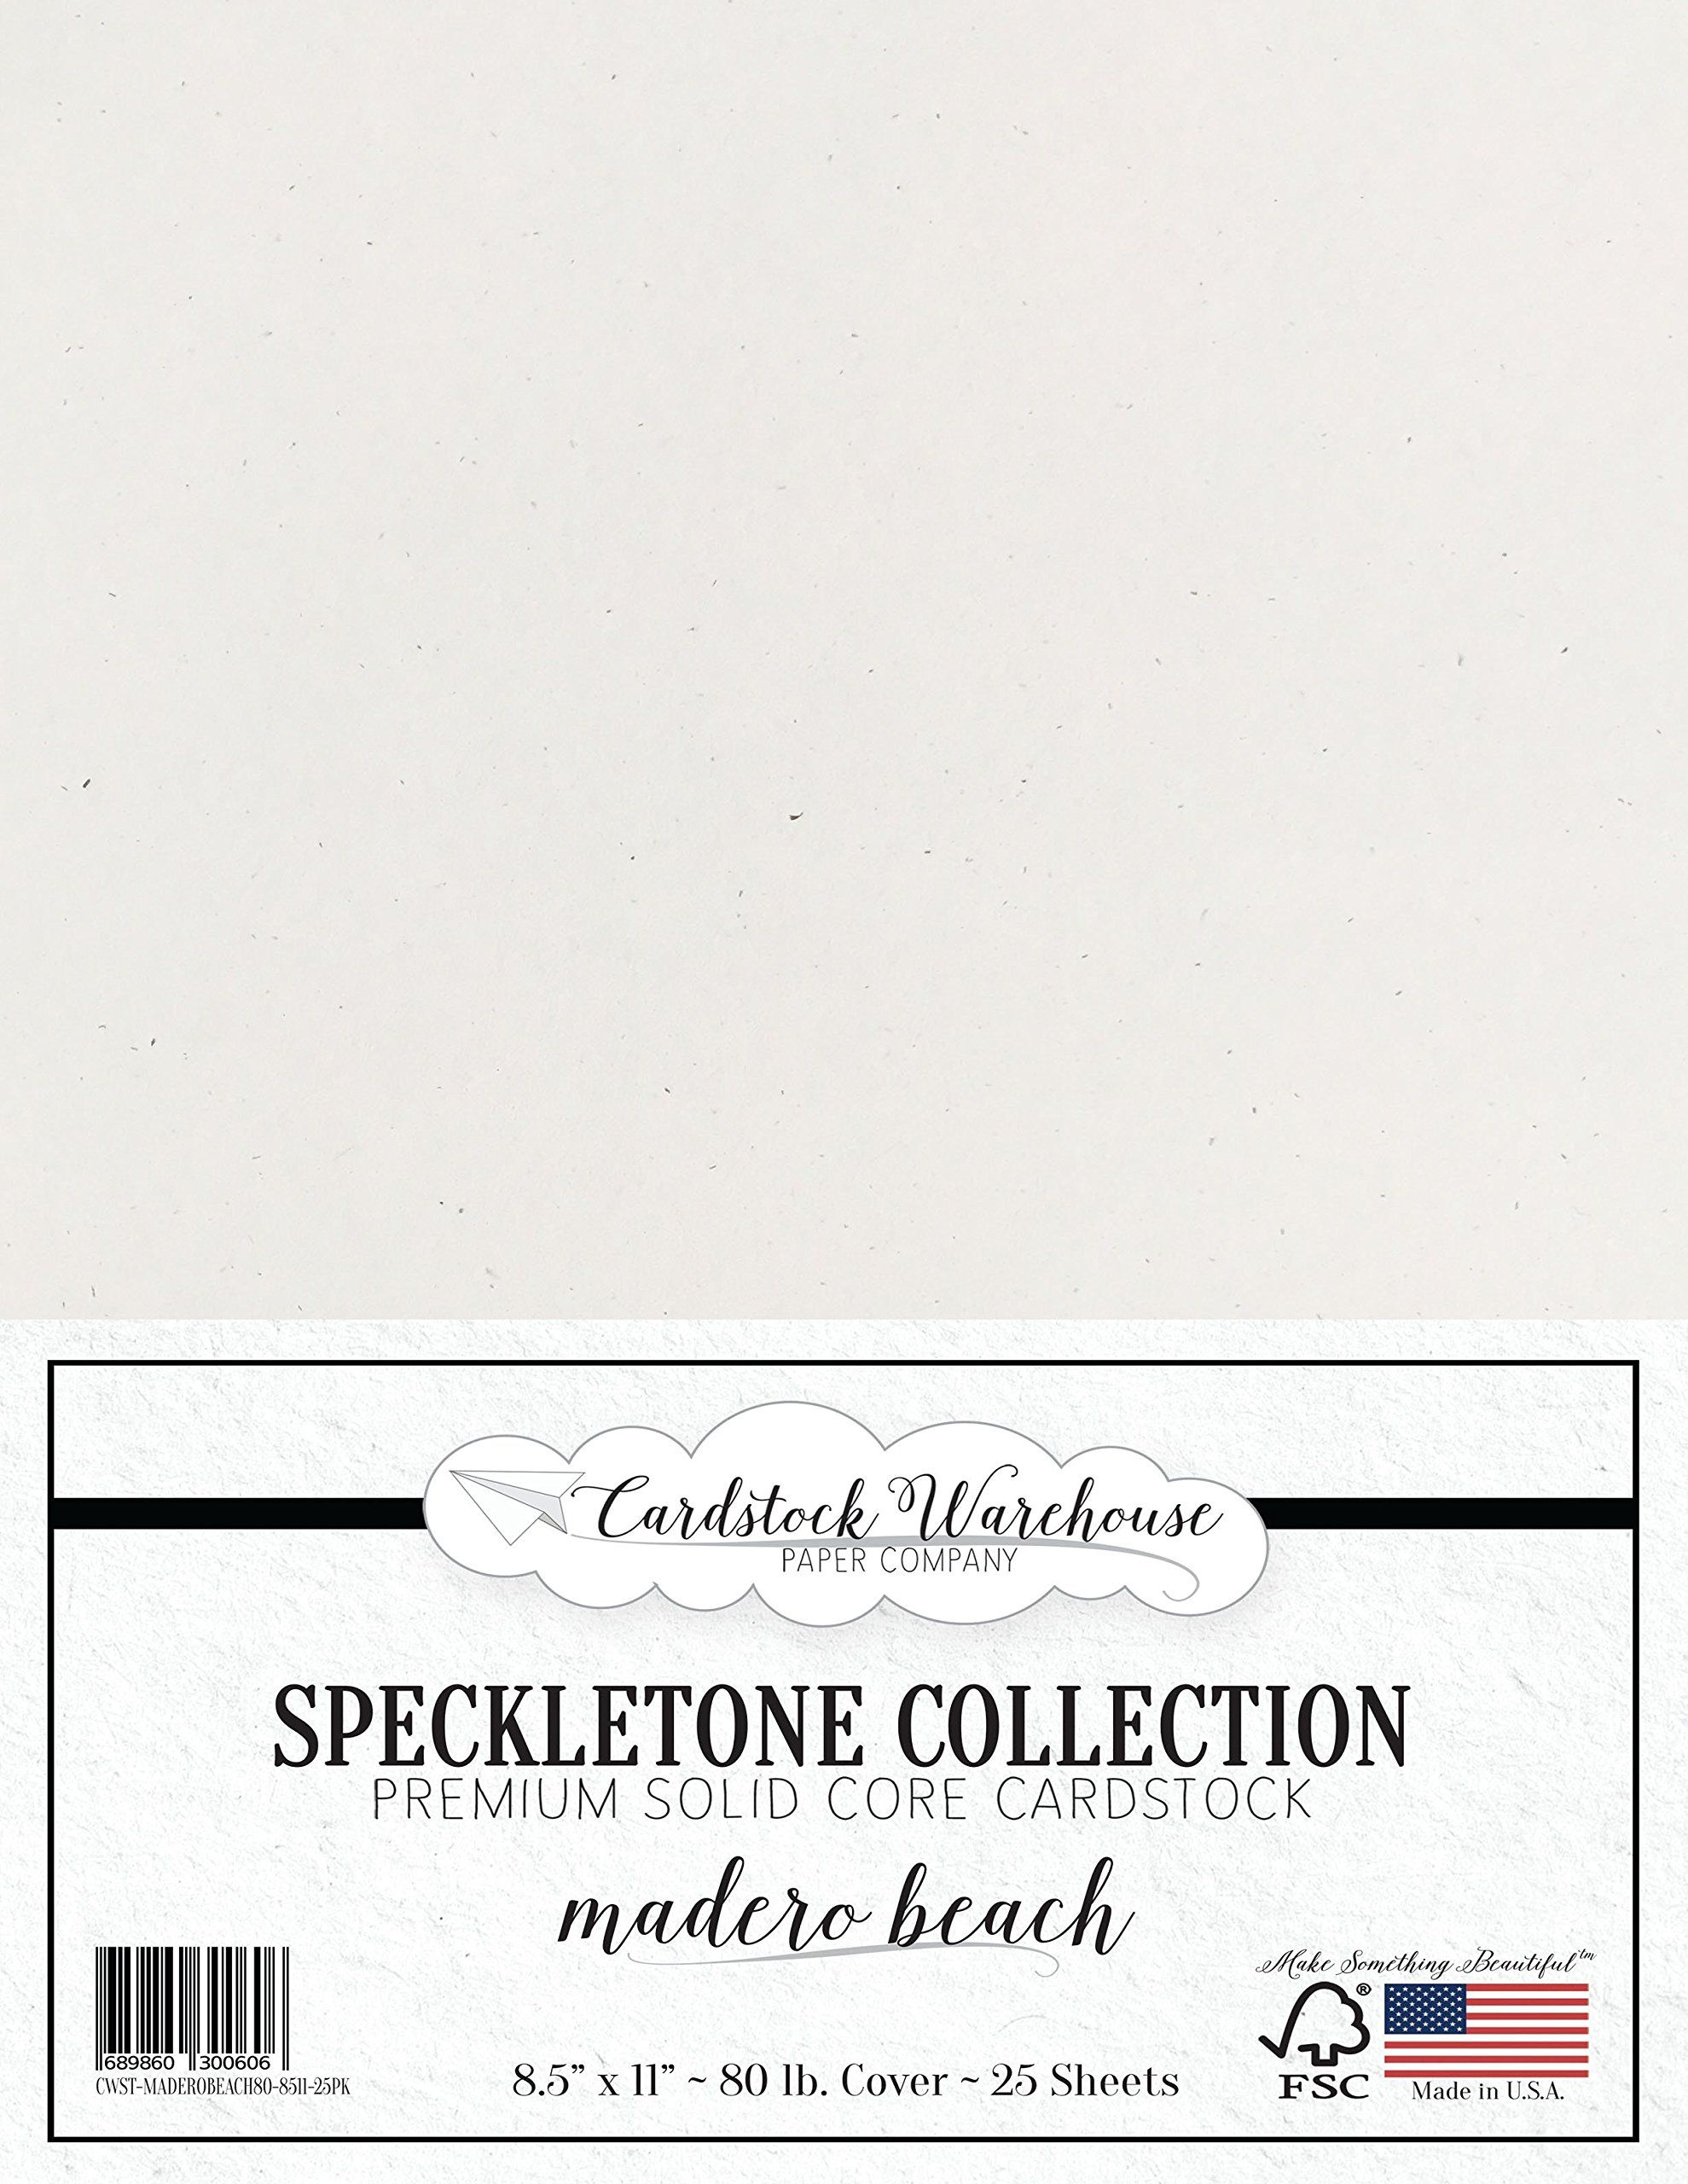 Madero Beach White Speckletone Recycled Cardstock Paper 8 5 X 11 Inch Premium 80 Lb Cover 25 Sheets Recycled Cardstock Cardstock Paper Stationery Craft